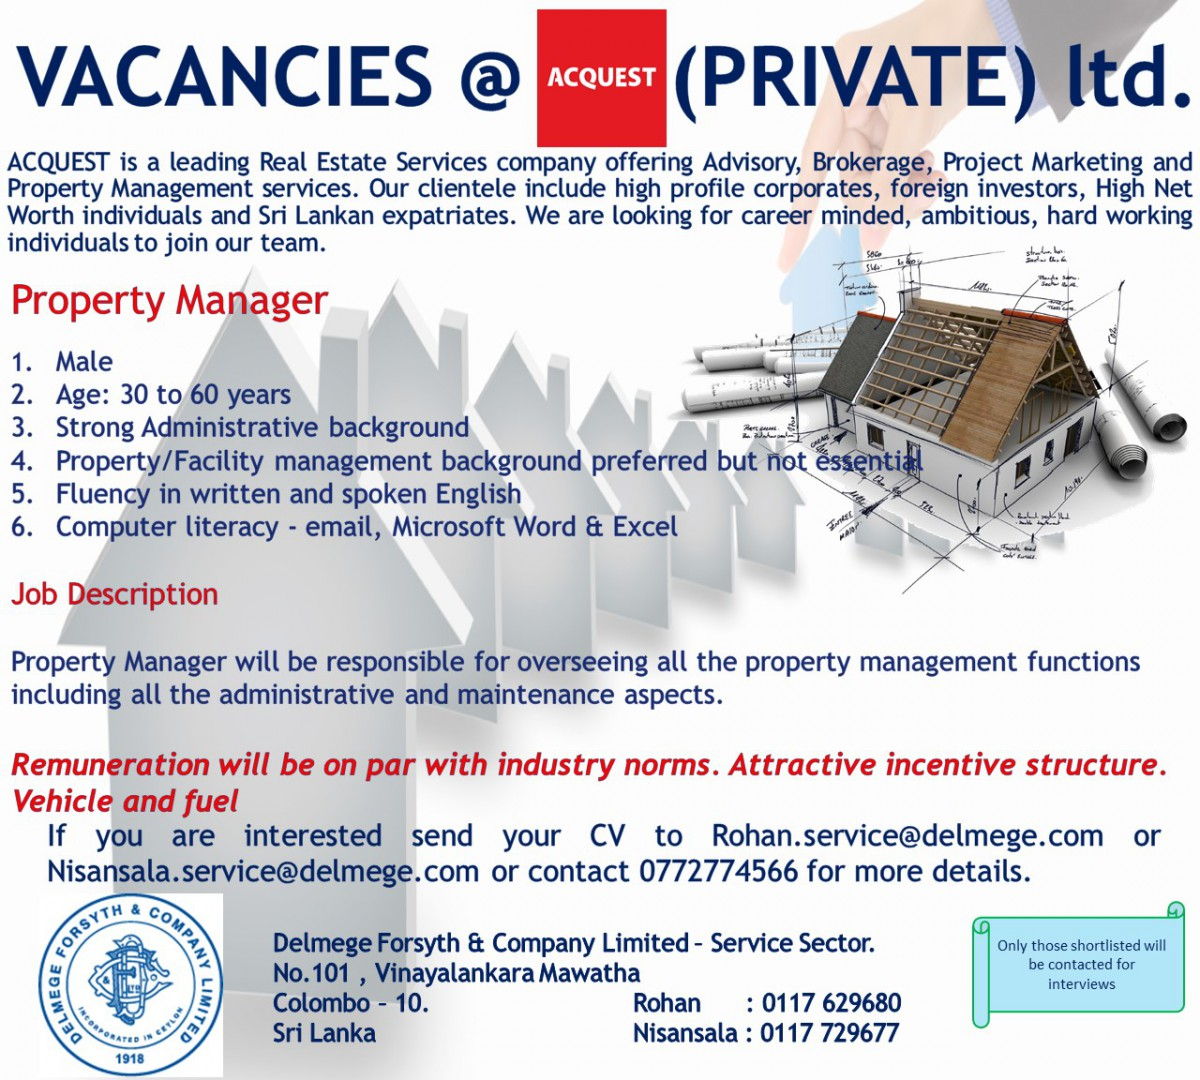 property manager colombo job vacancy in sri lanka acquest is a leading real estate services company offering advisory brokerage project marketing and property management services we are looking for career